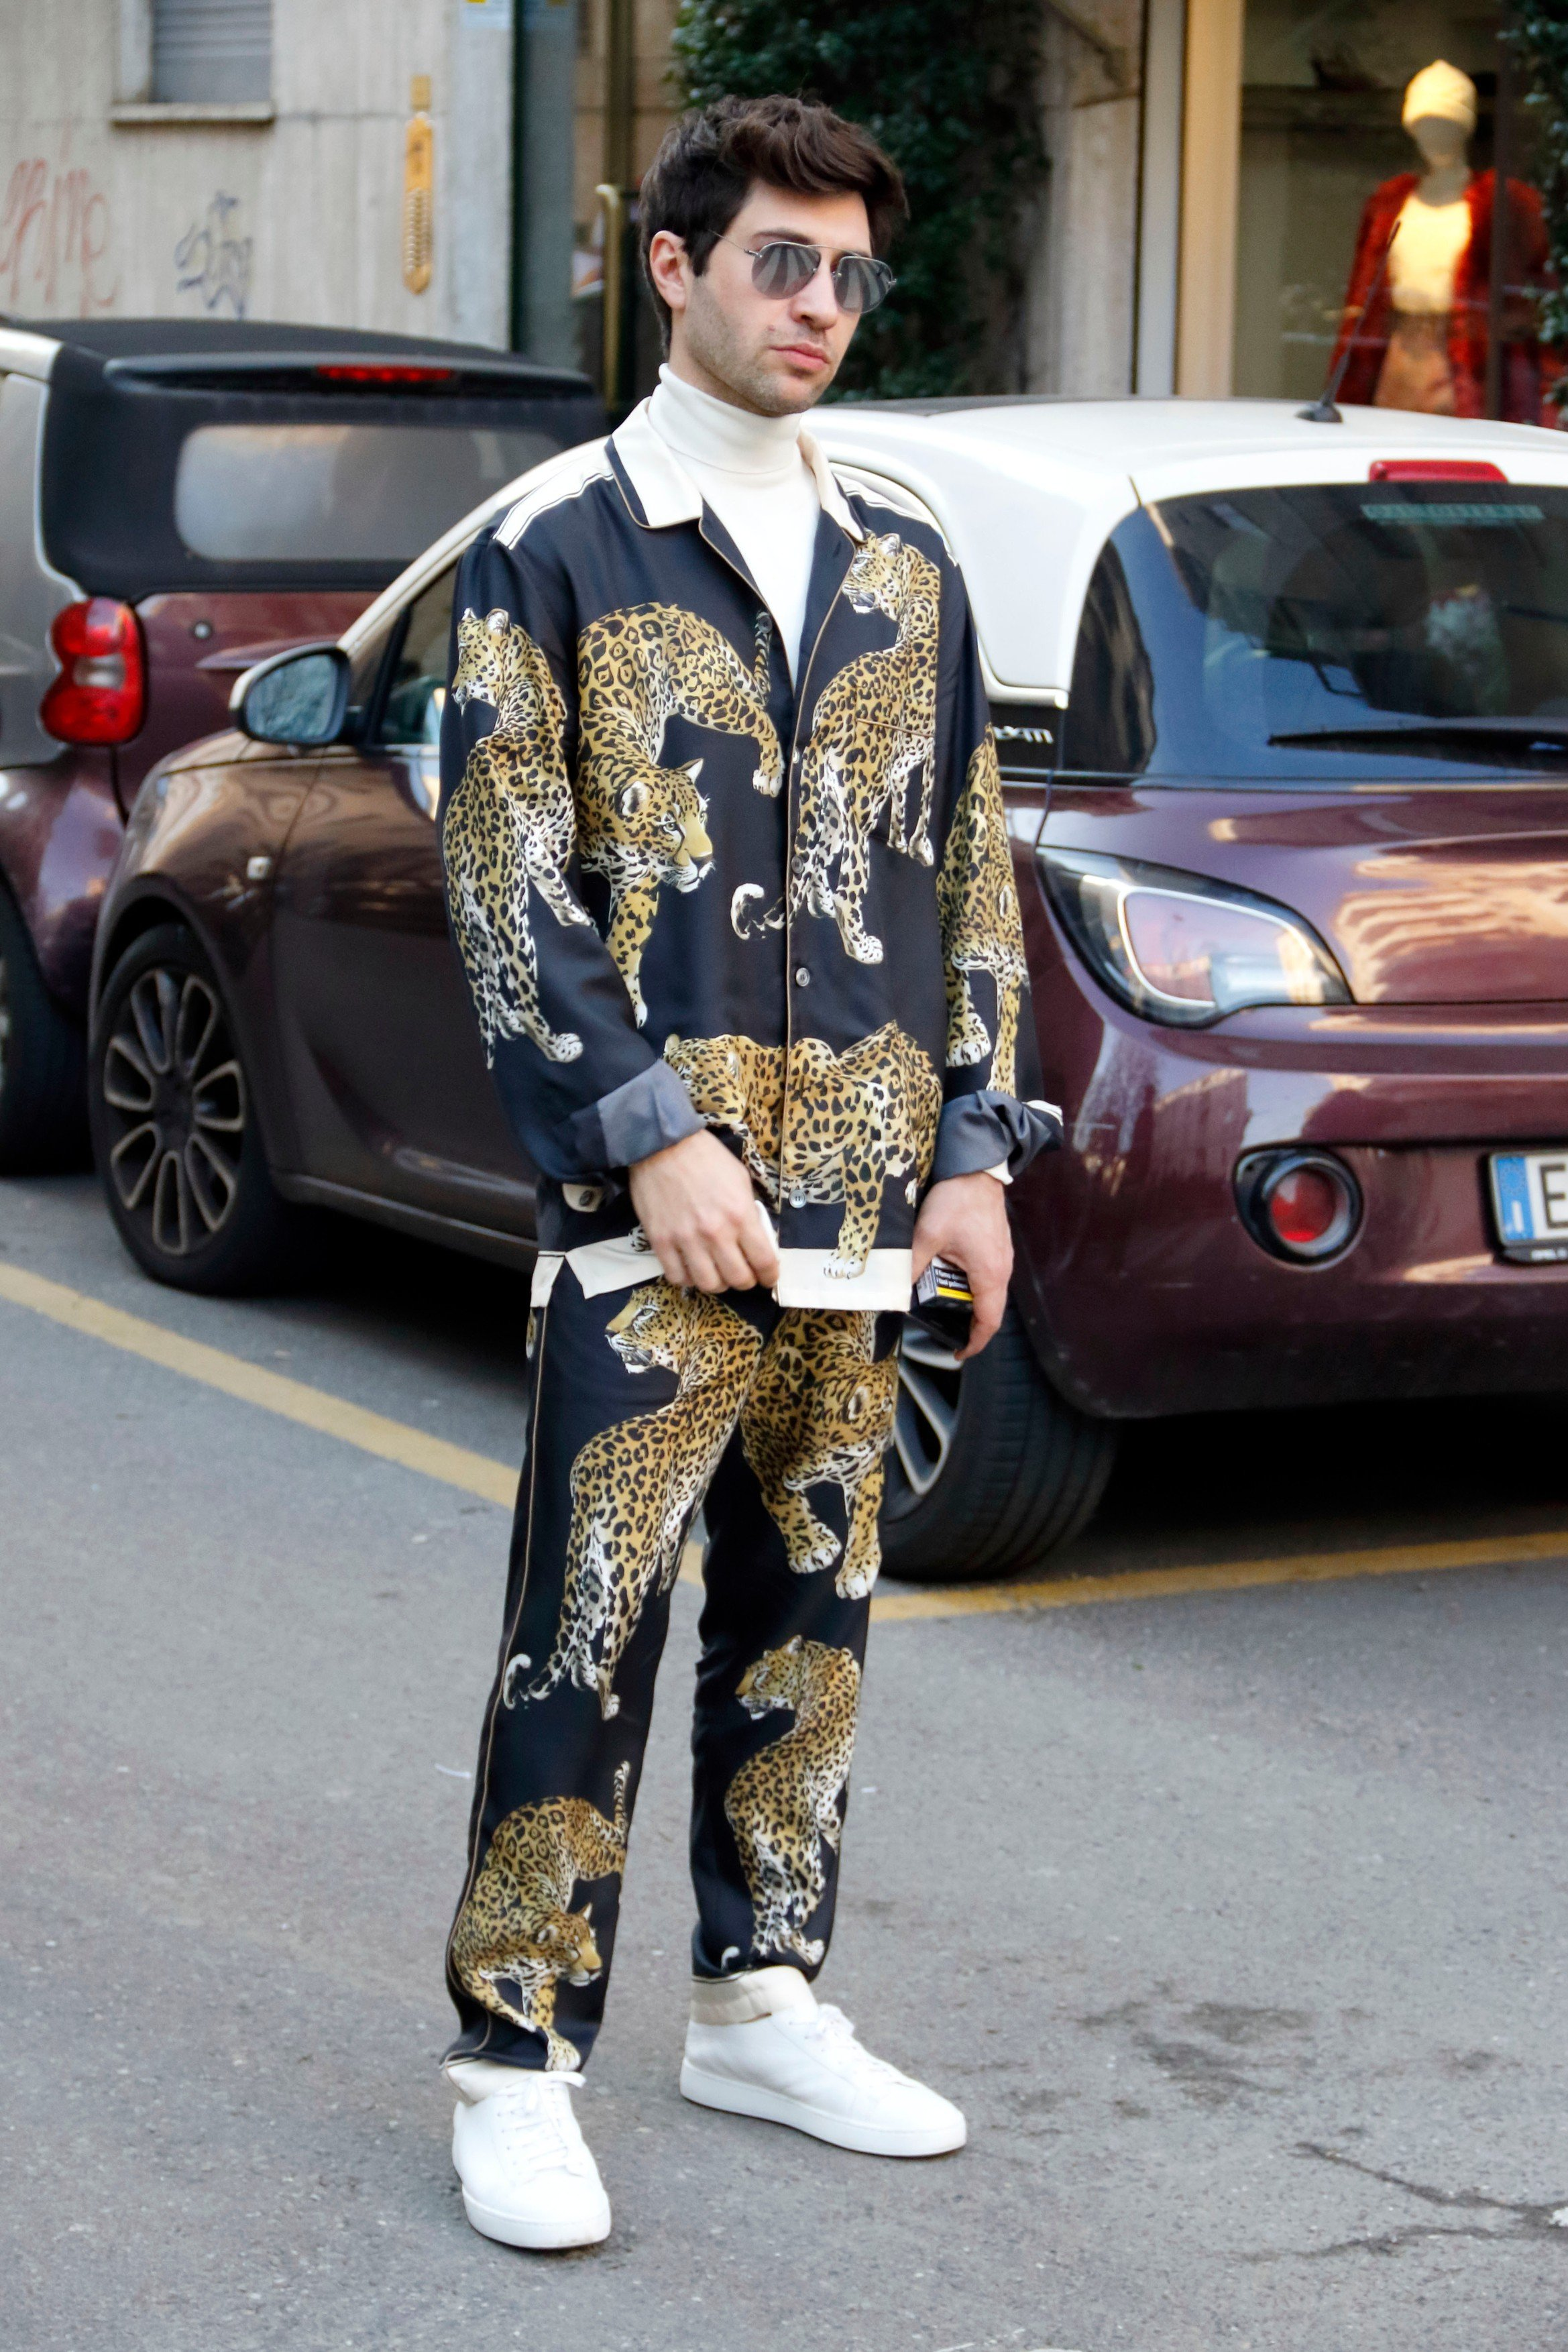 Guest arriving at Dolce e Gabbana fashion show in Milan, Italy, January 13, 2018., Image: 360101231, License: Rights-managed, Restrictions: , Model Release: no, Credit line: Profimedia, Abaca